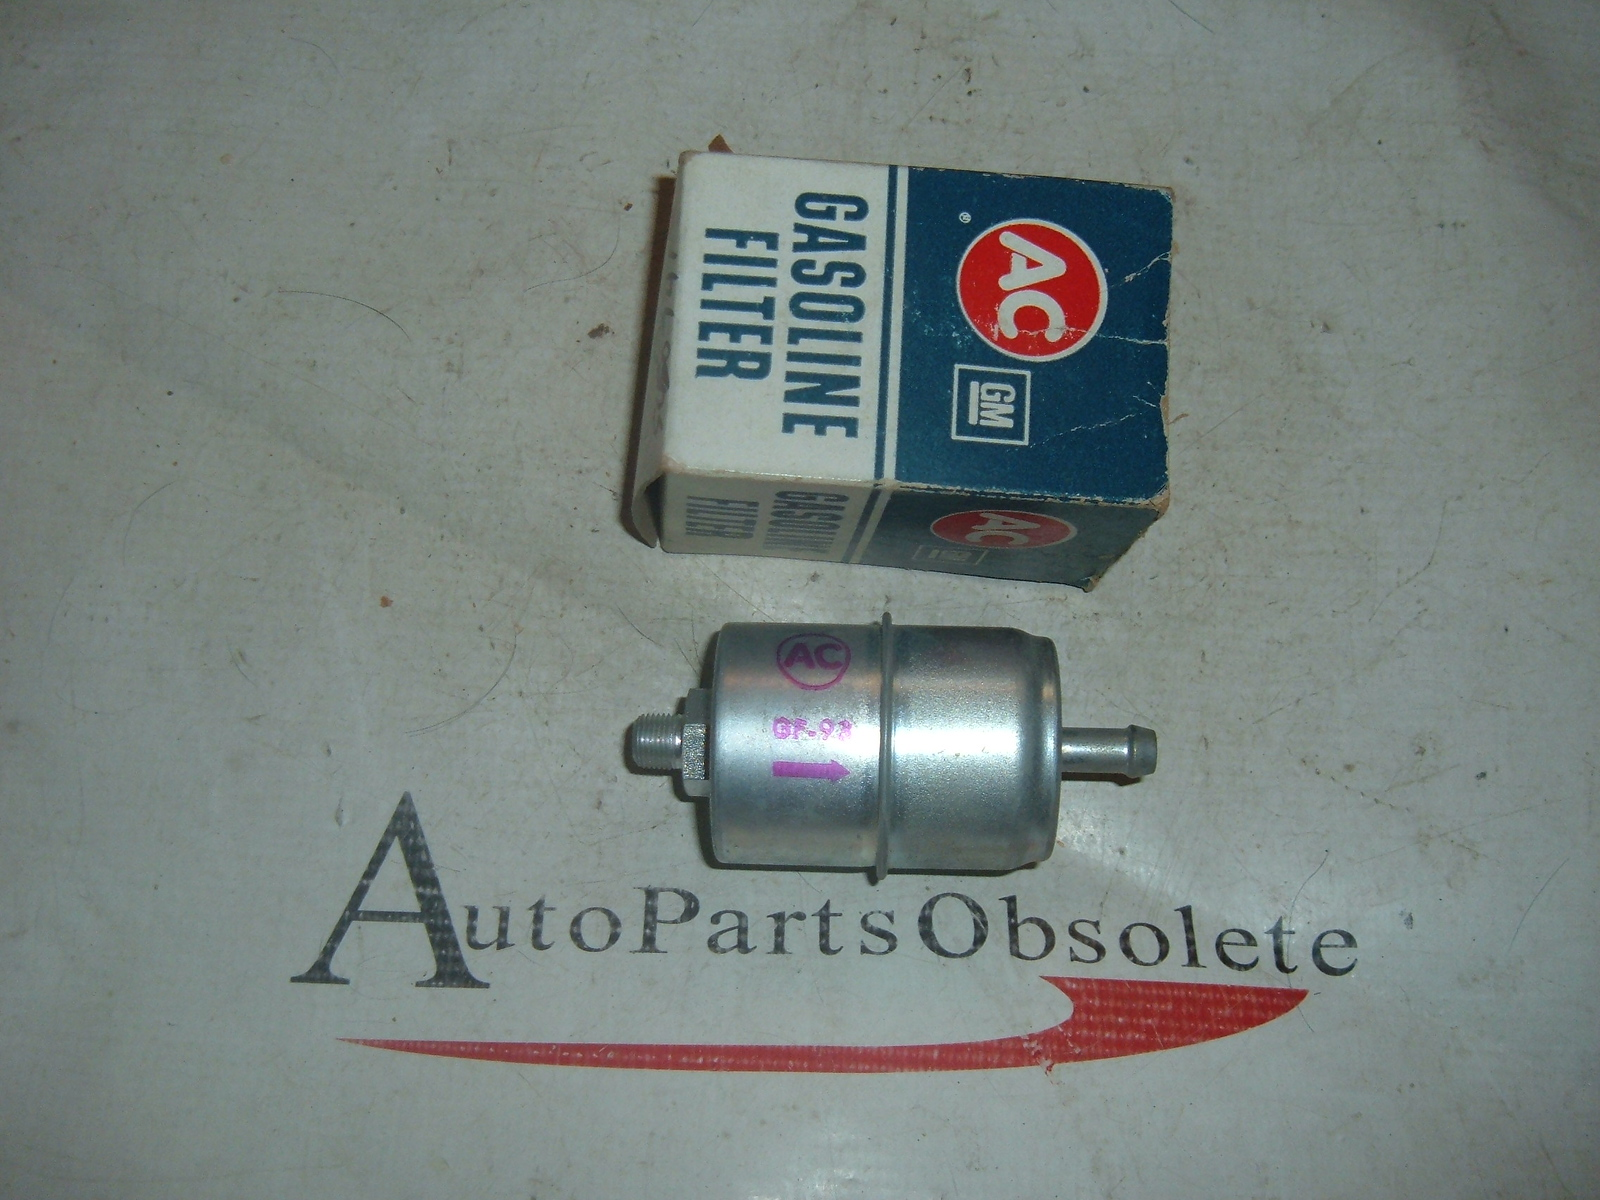 1962 ford falcon comet ac delco fuel filter 5650741 GF-93 (z 5650741)